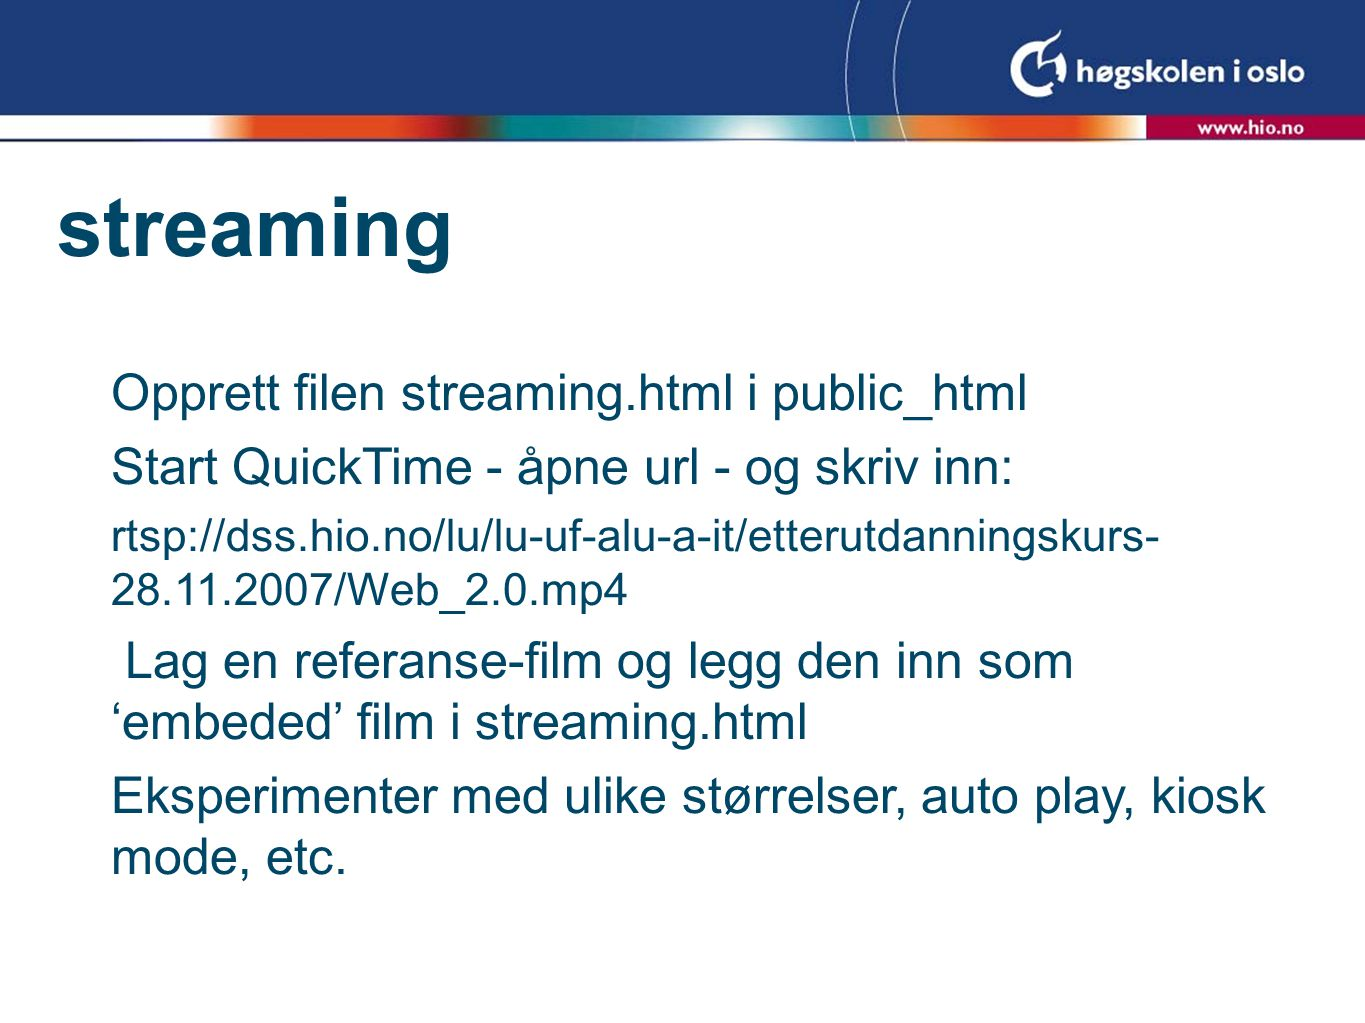 streaming Opprett filen streaming.html i public_html Start QuickTime - åpne url - og skriv inn: rtsp://dss.hio.no/lu/lu-uf-alu-a-it/etterutdanningskurs /Web_2.0.mp4 Lag en referanse-film og legg den inn som 'embeded' film i streaming.html Eksperimenter med ulike størrelser, auto play, kiosk mode, etc.